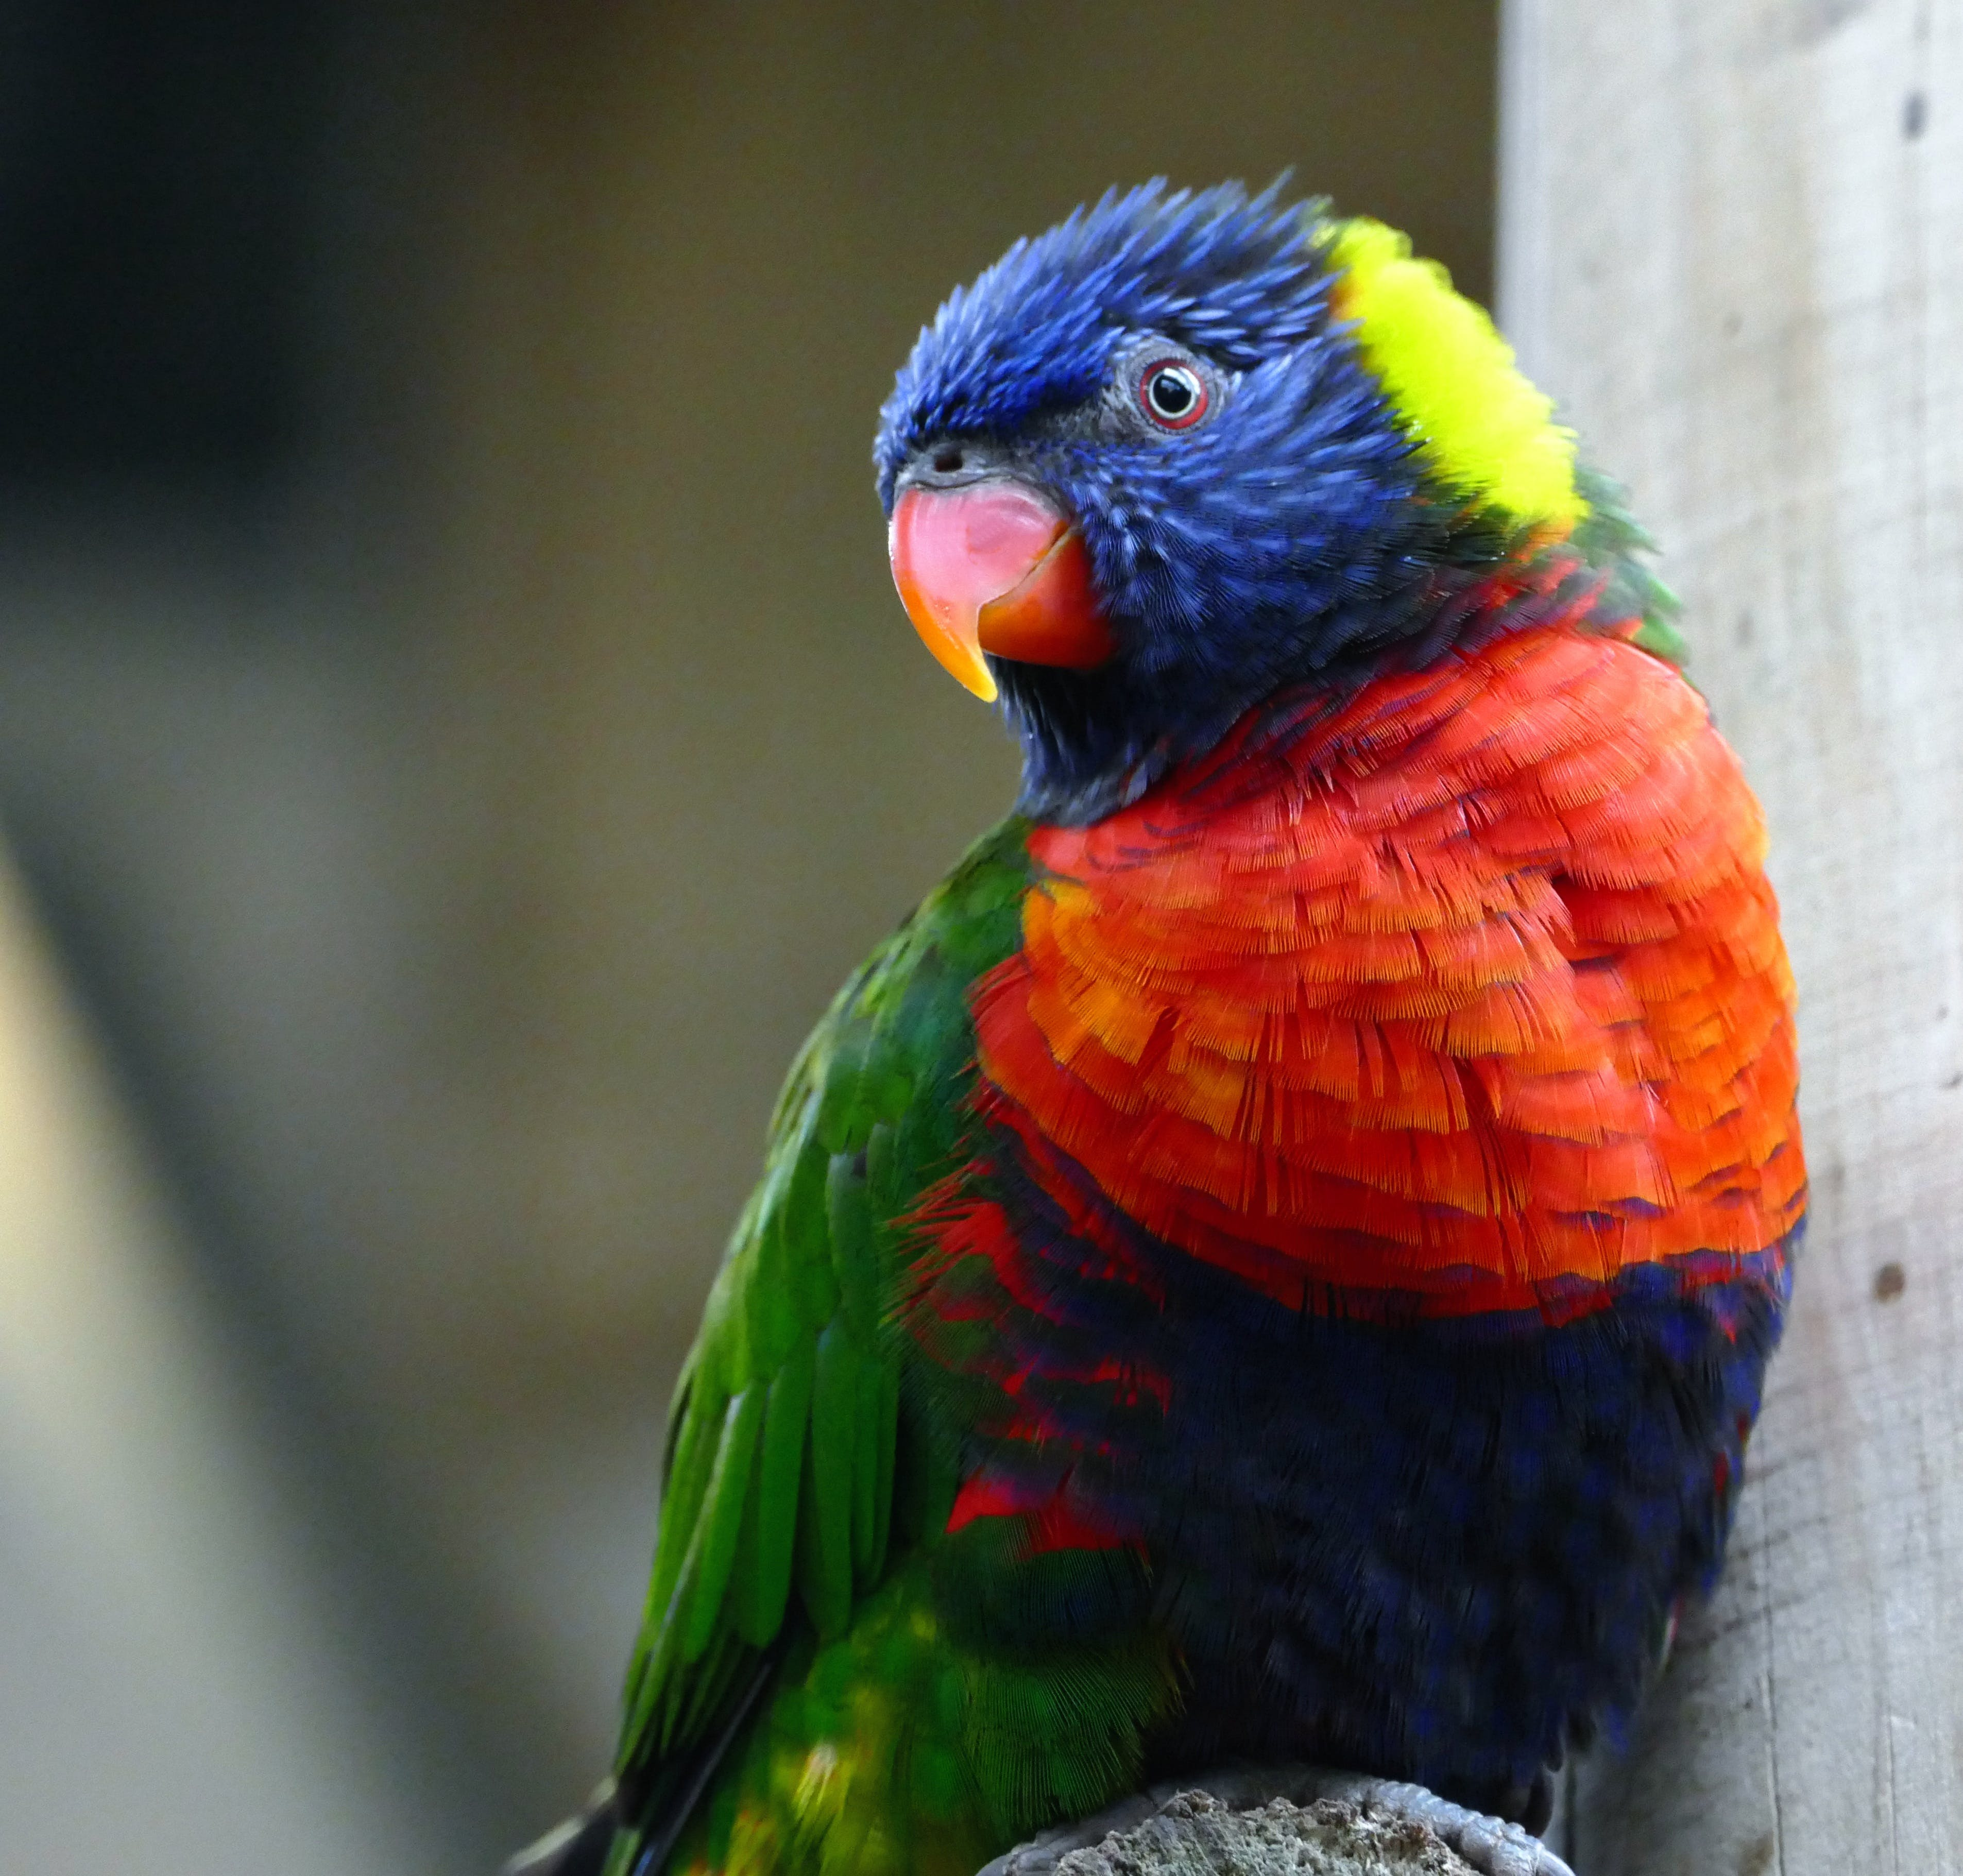 Free stock photo of nature, bird, animal, colourful